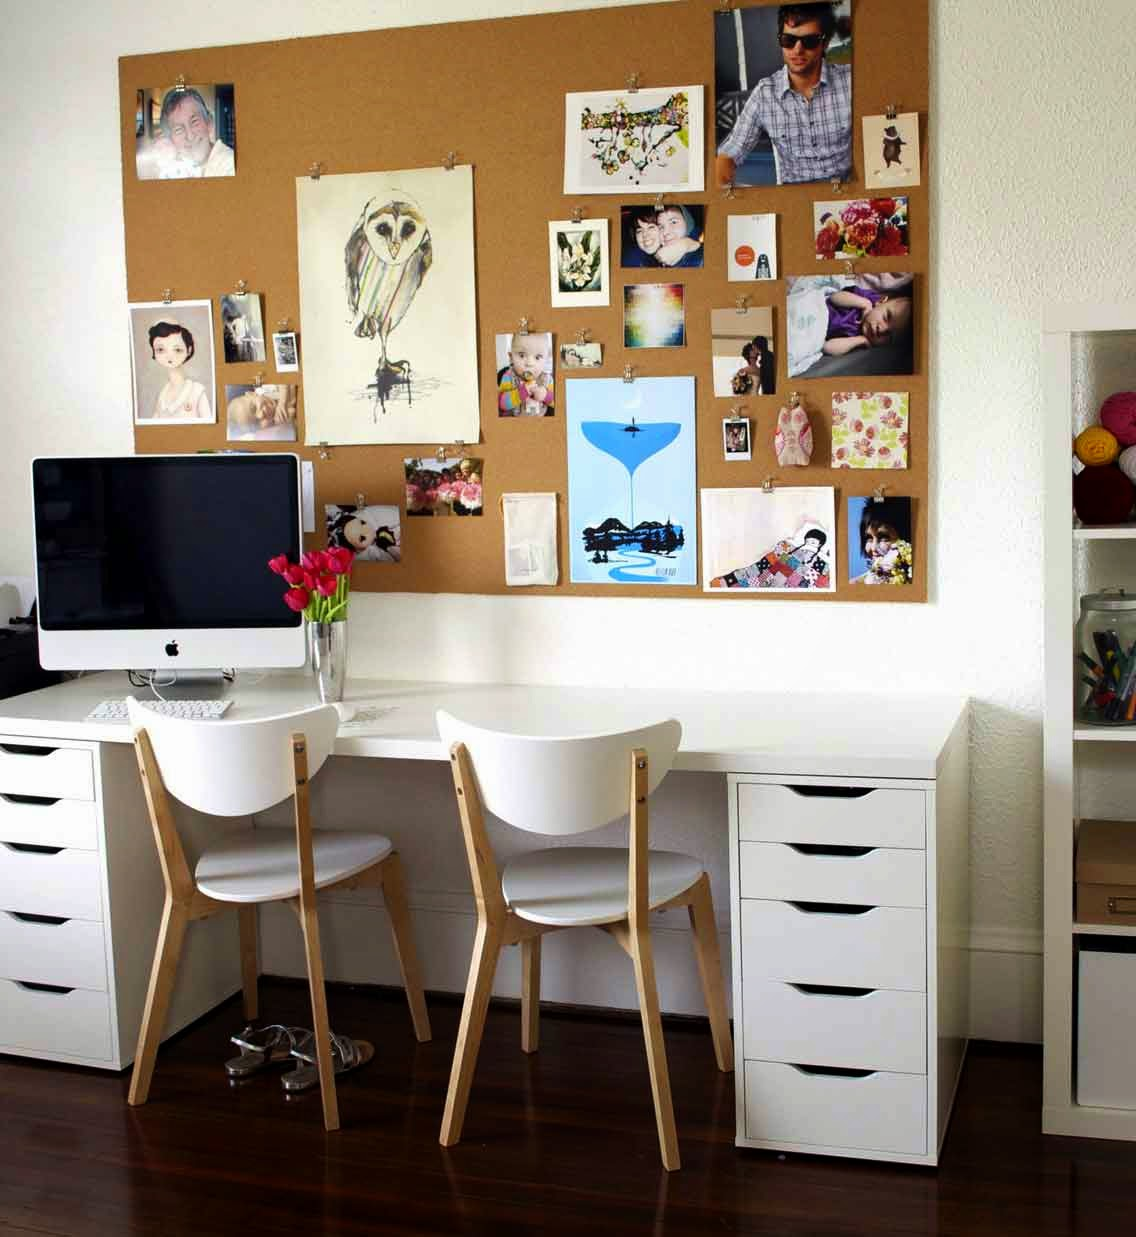 Tips de decoraci n de dormitorios juveniles - Ideas para decorar dormitorio juvenil ...